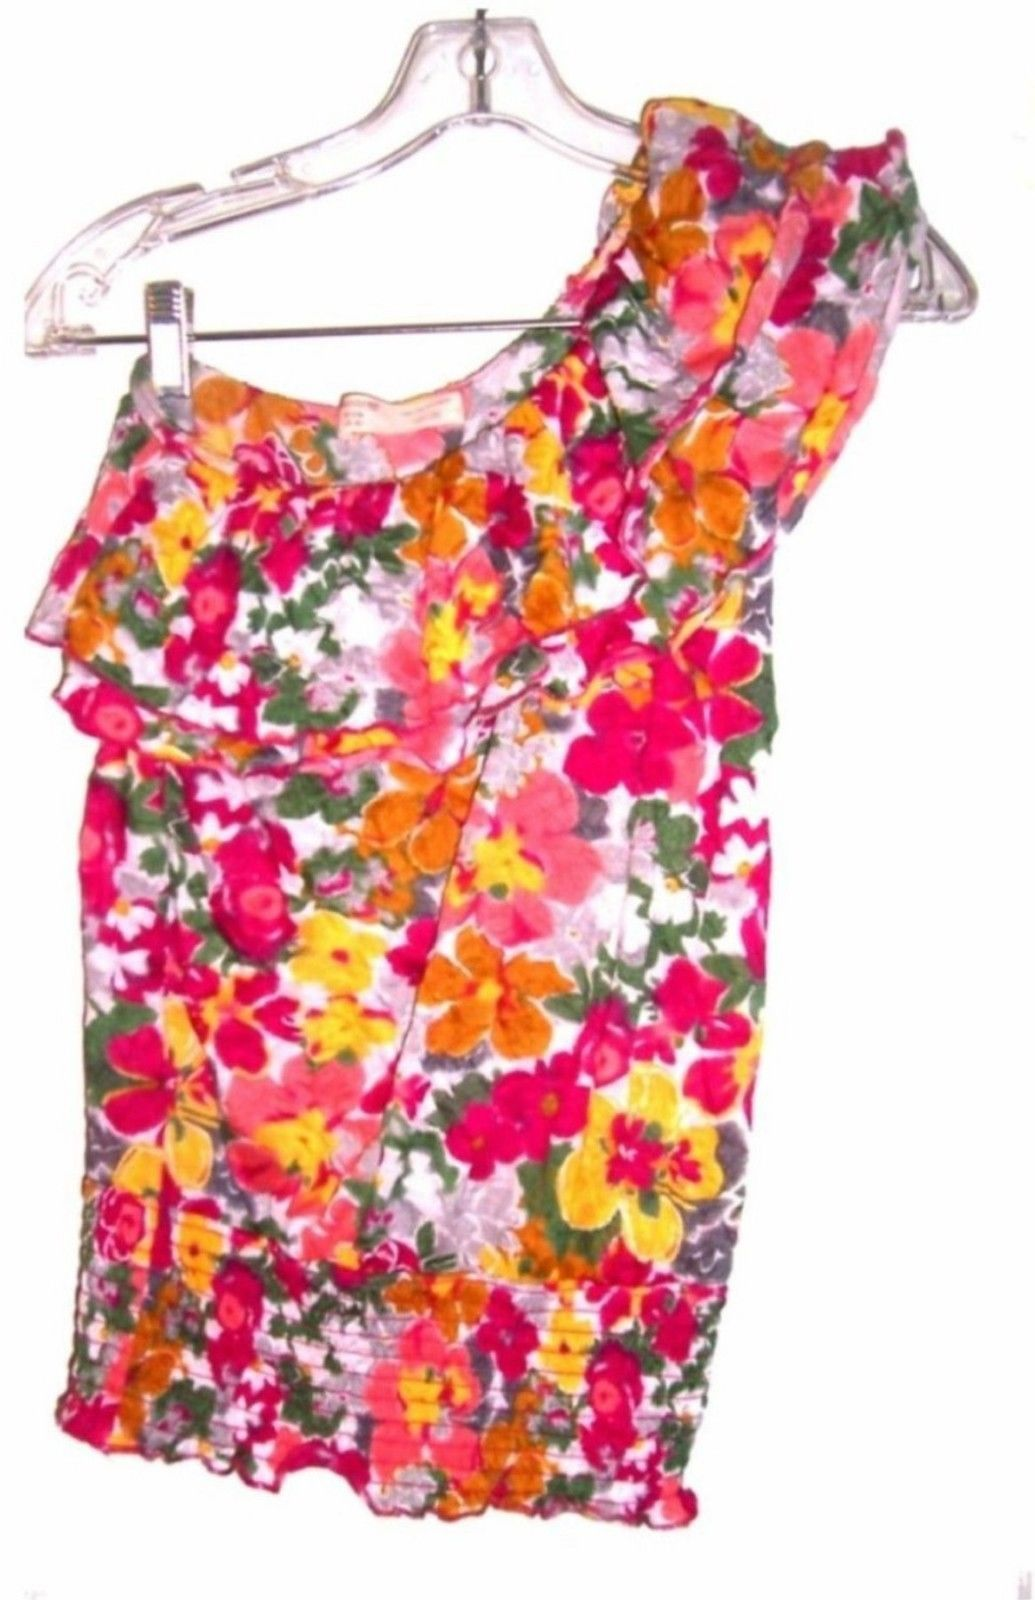 Sizes S - XL ~ No Boundaries NoBo Sleeveless Summer Tops in Blue, Pink & Yellow